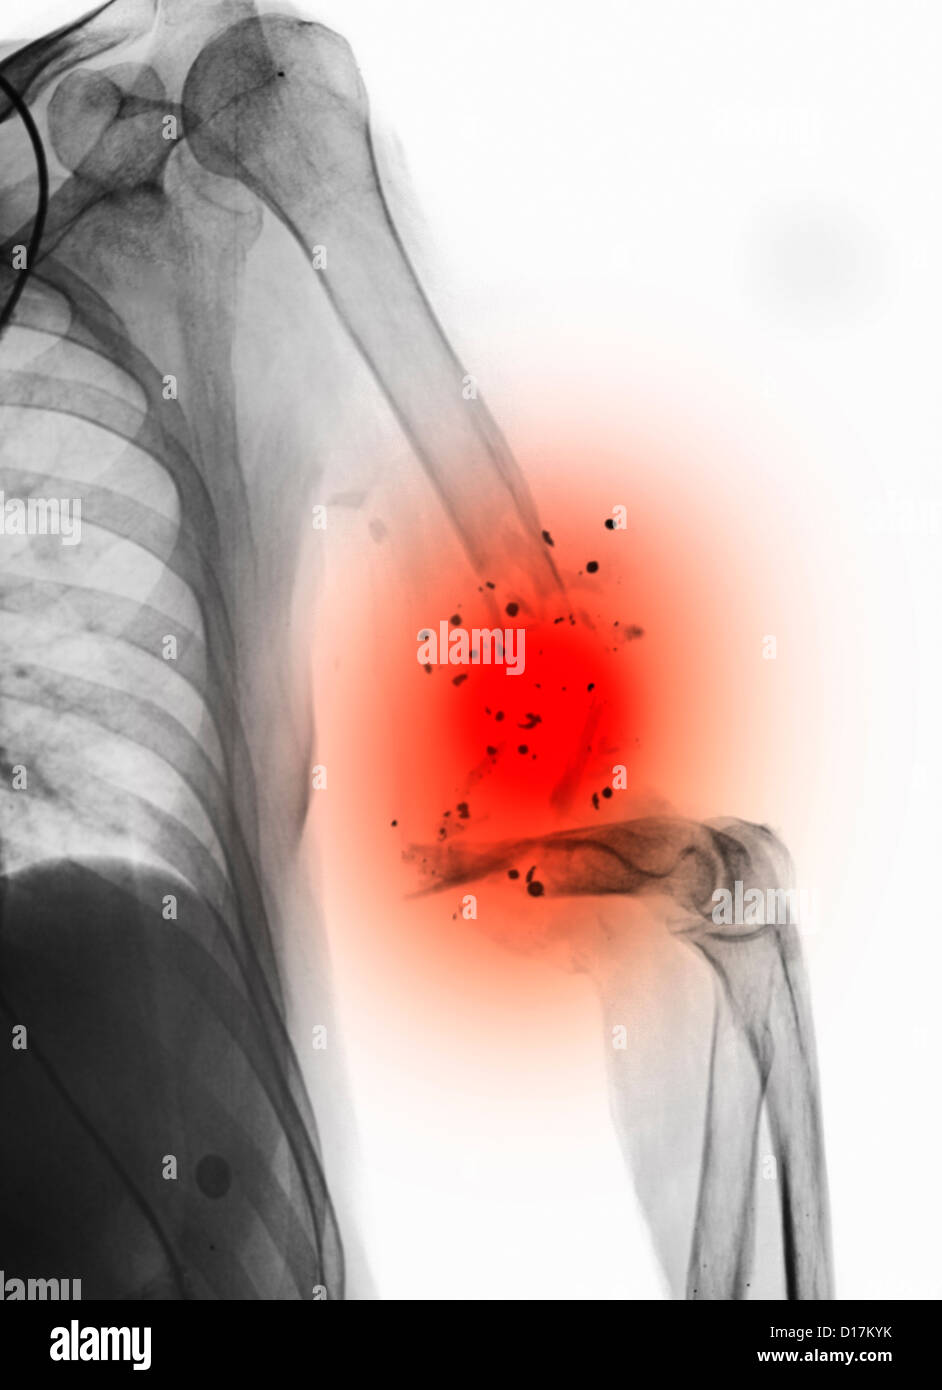 X-ray of upper arm with a gunshot wound - Stock Image